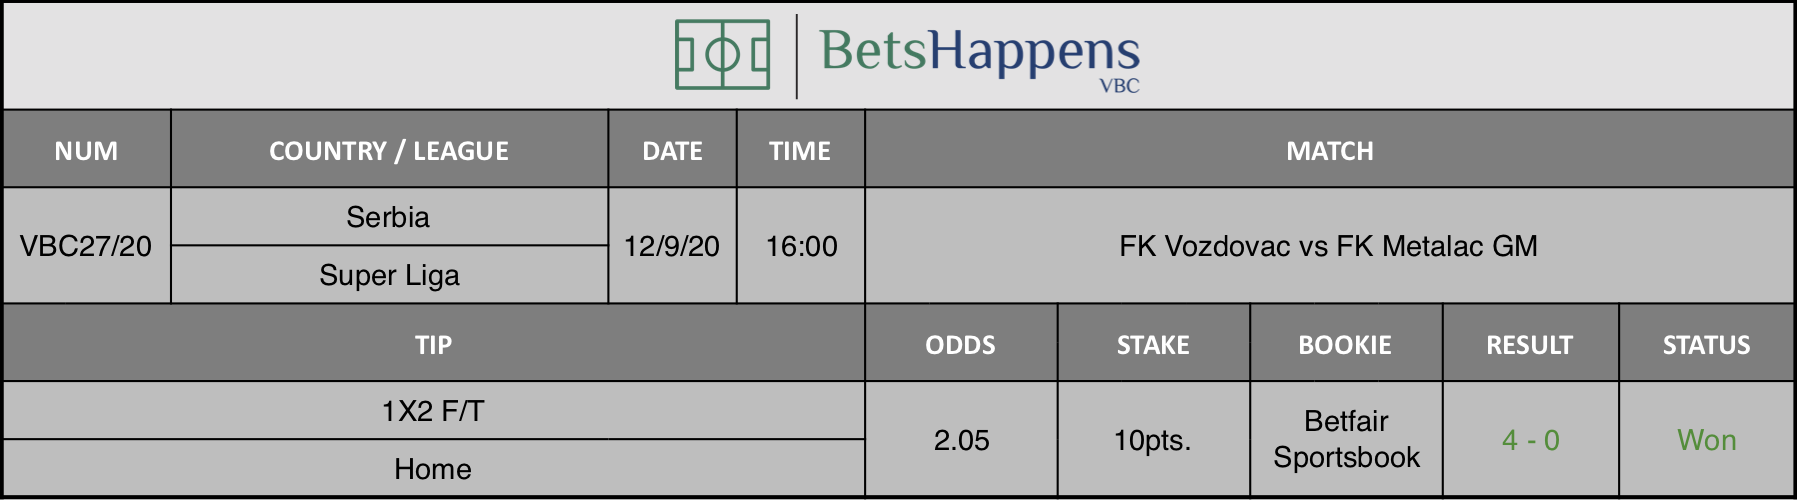 Results of our advice for the FK Vozdovac vs FK Metalac GM match in which Winner F / T Home is recommended.